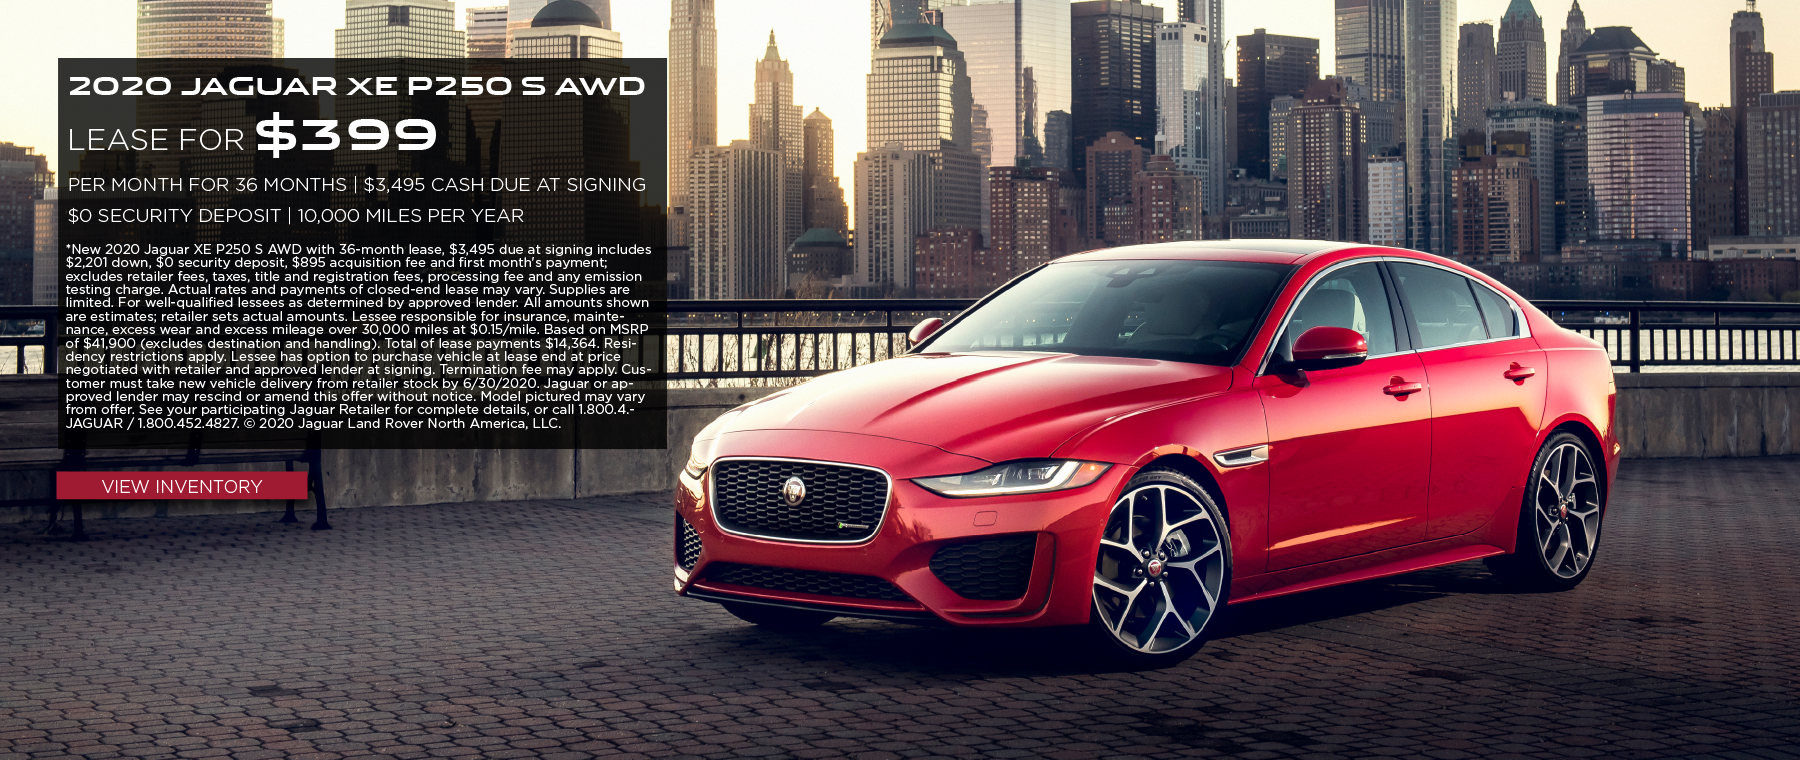 2020 JAGUAR XE P250 S AWD. $399 PER MONTH. 36 MONTH LEASE TERM. $3,495 CASH DUE AT SIGNING. $0 SECURITY DEPOSIT. 10,000 MILES PER YEAR. EXCLUDES RETAILER FEES, TAXES, TITLE AND REGISTRATION FEES, PROCESSING FEE AND ANY EMISSION TESTING CHARGE. OFFER ENDS 6/30/2020. VIEW INVENTORY. JAGUAR XE PARKED IN CITY.